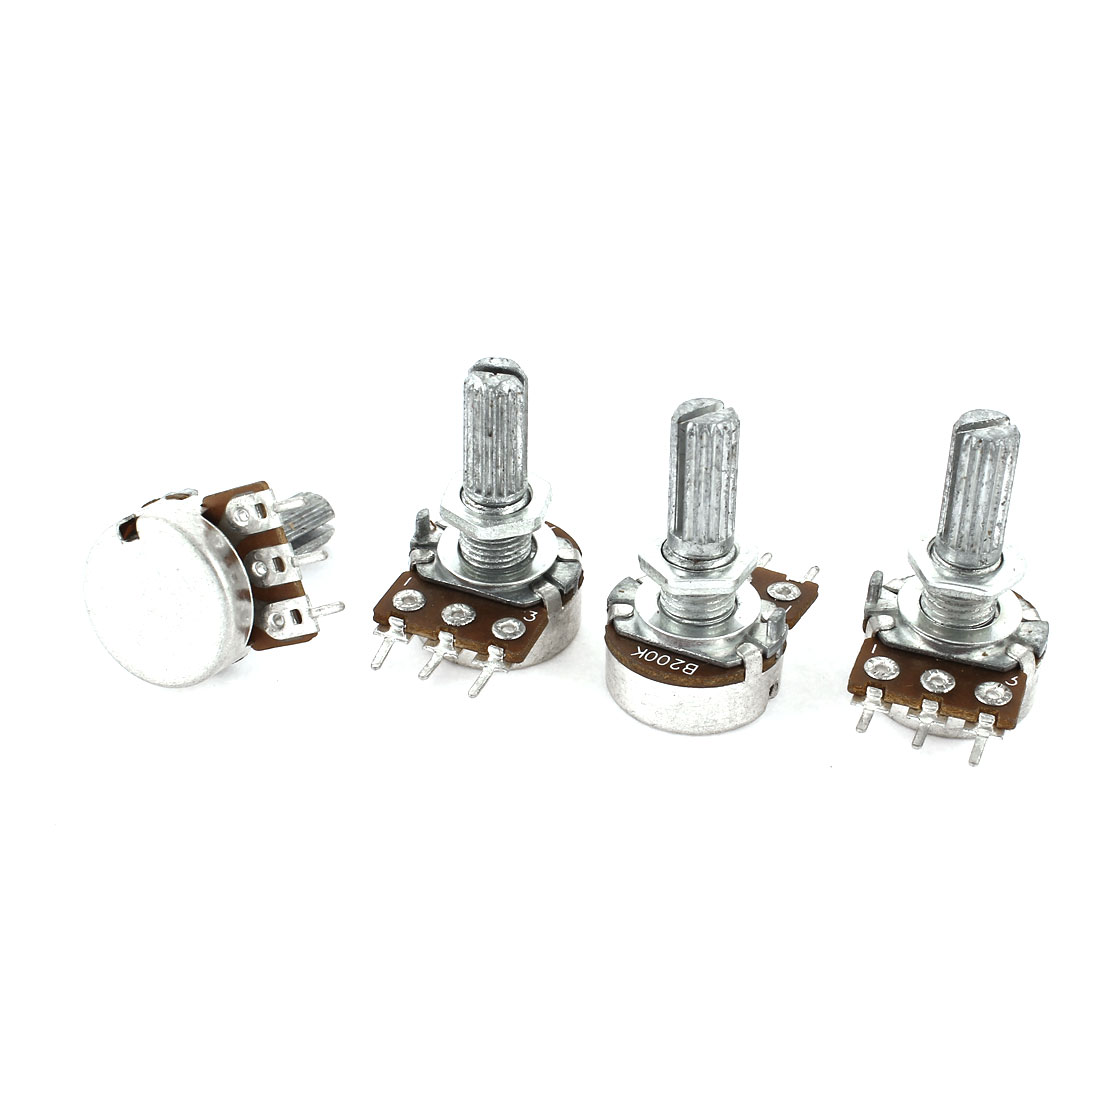 4 Pcs Single Linear Knurled Shaft Control Volume Potentiometers 200K Ohm WH148